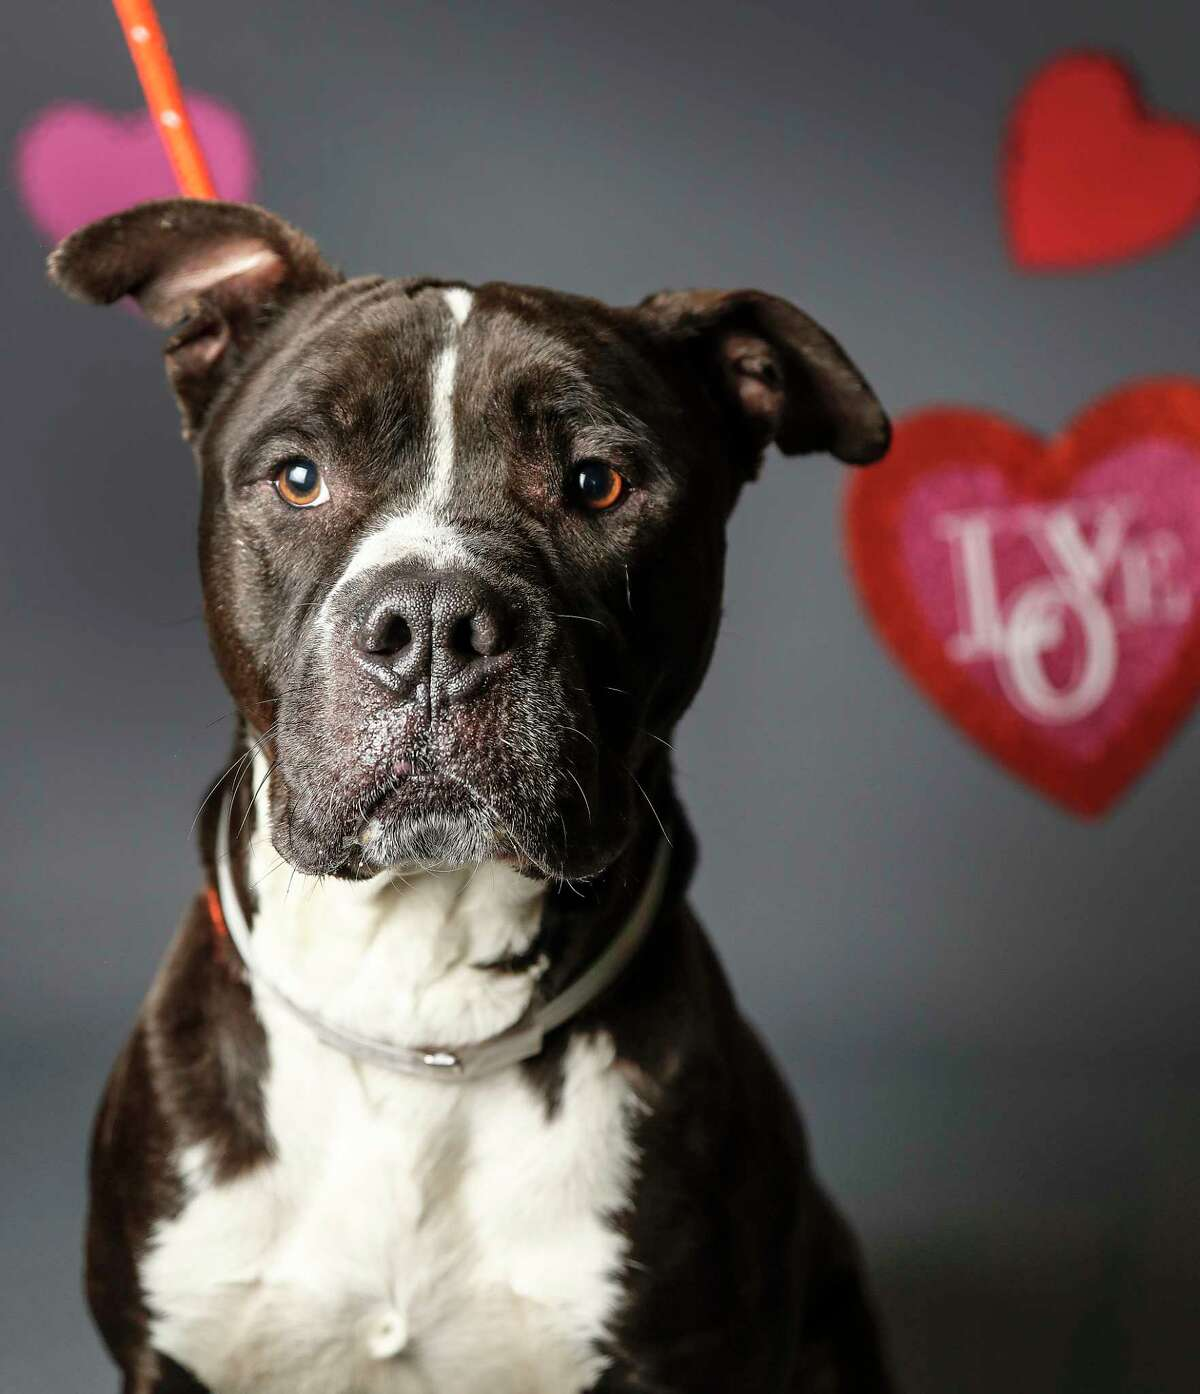 Popeye (A1509621) is a 5-year-old, male, black/white Boxer mix available for adoption from the BARC Animal Shelter, Wednesday, Feb. 5, 2020, in Houston. Popeye came into the shelter 2 1/2 years ago, and was adopted quickly, but was recently returned to the shelter due to his owners home being heavily damaged by the recent Watson Grinding explosion, leaving the family and Popeye with no place to stay. Popeye is a very friendly dog, who loves treats and knows the